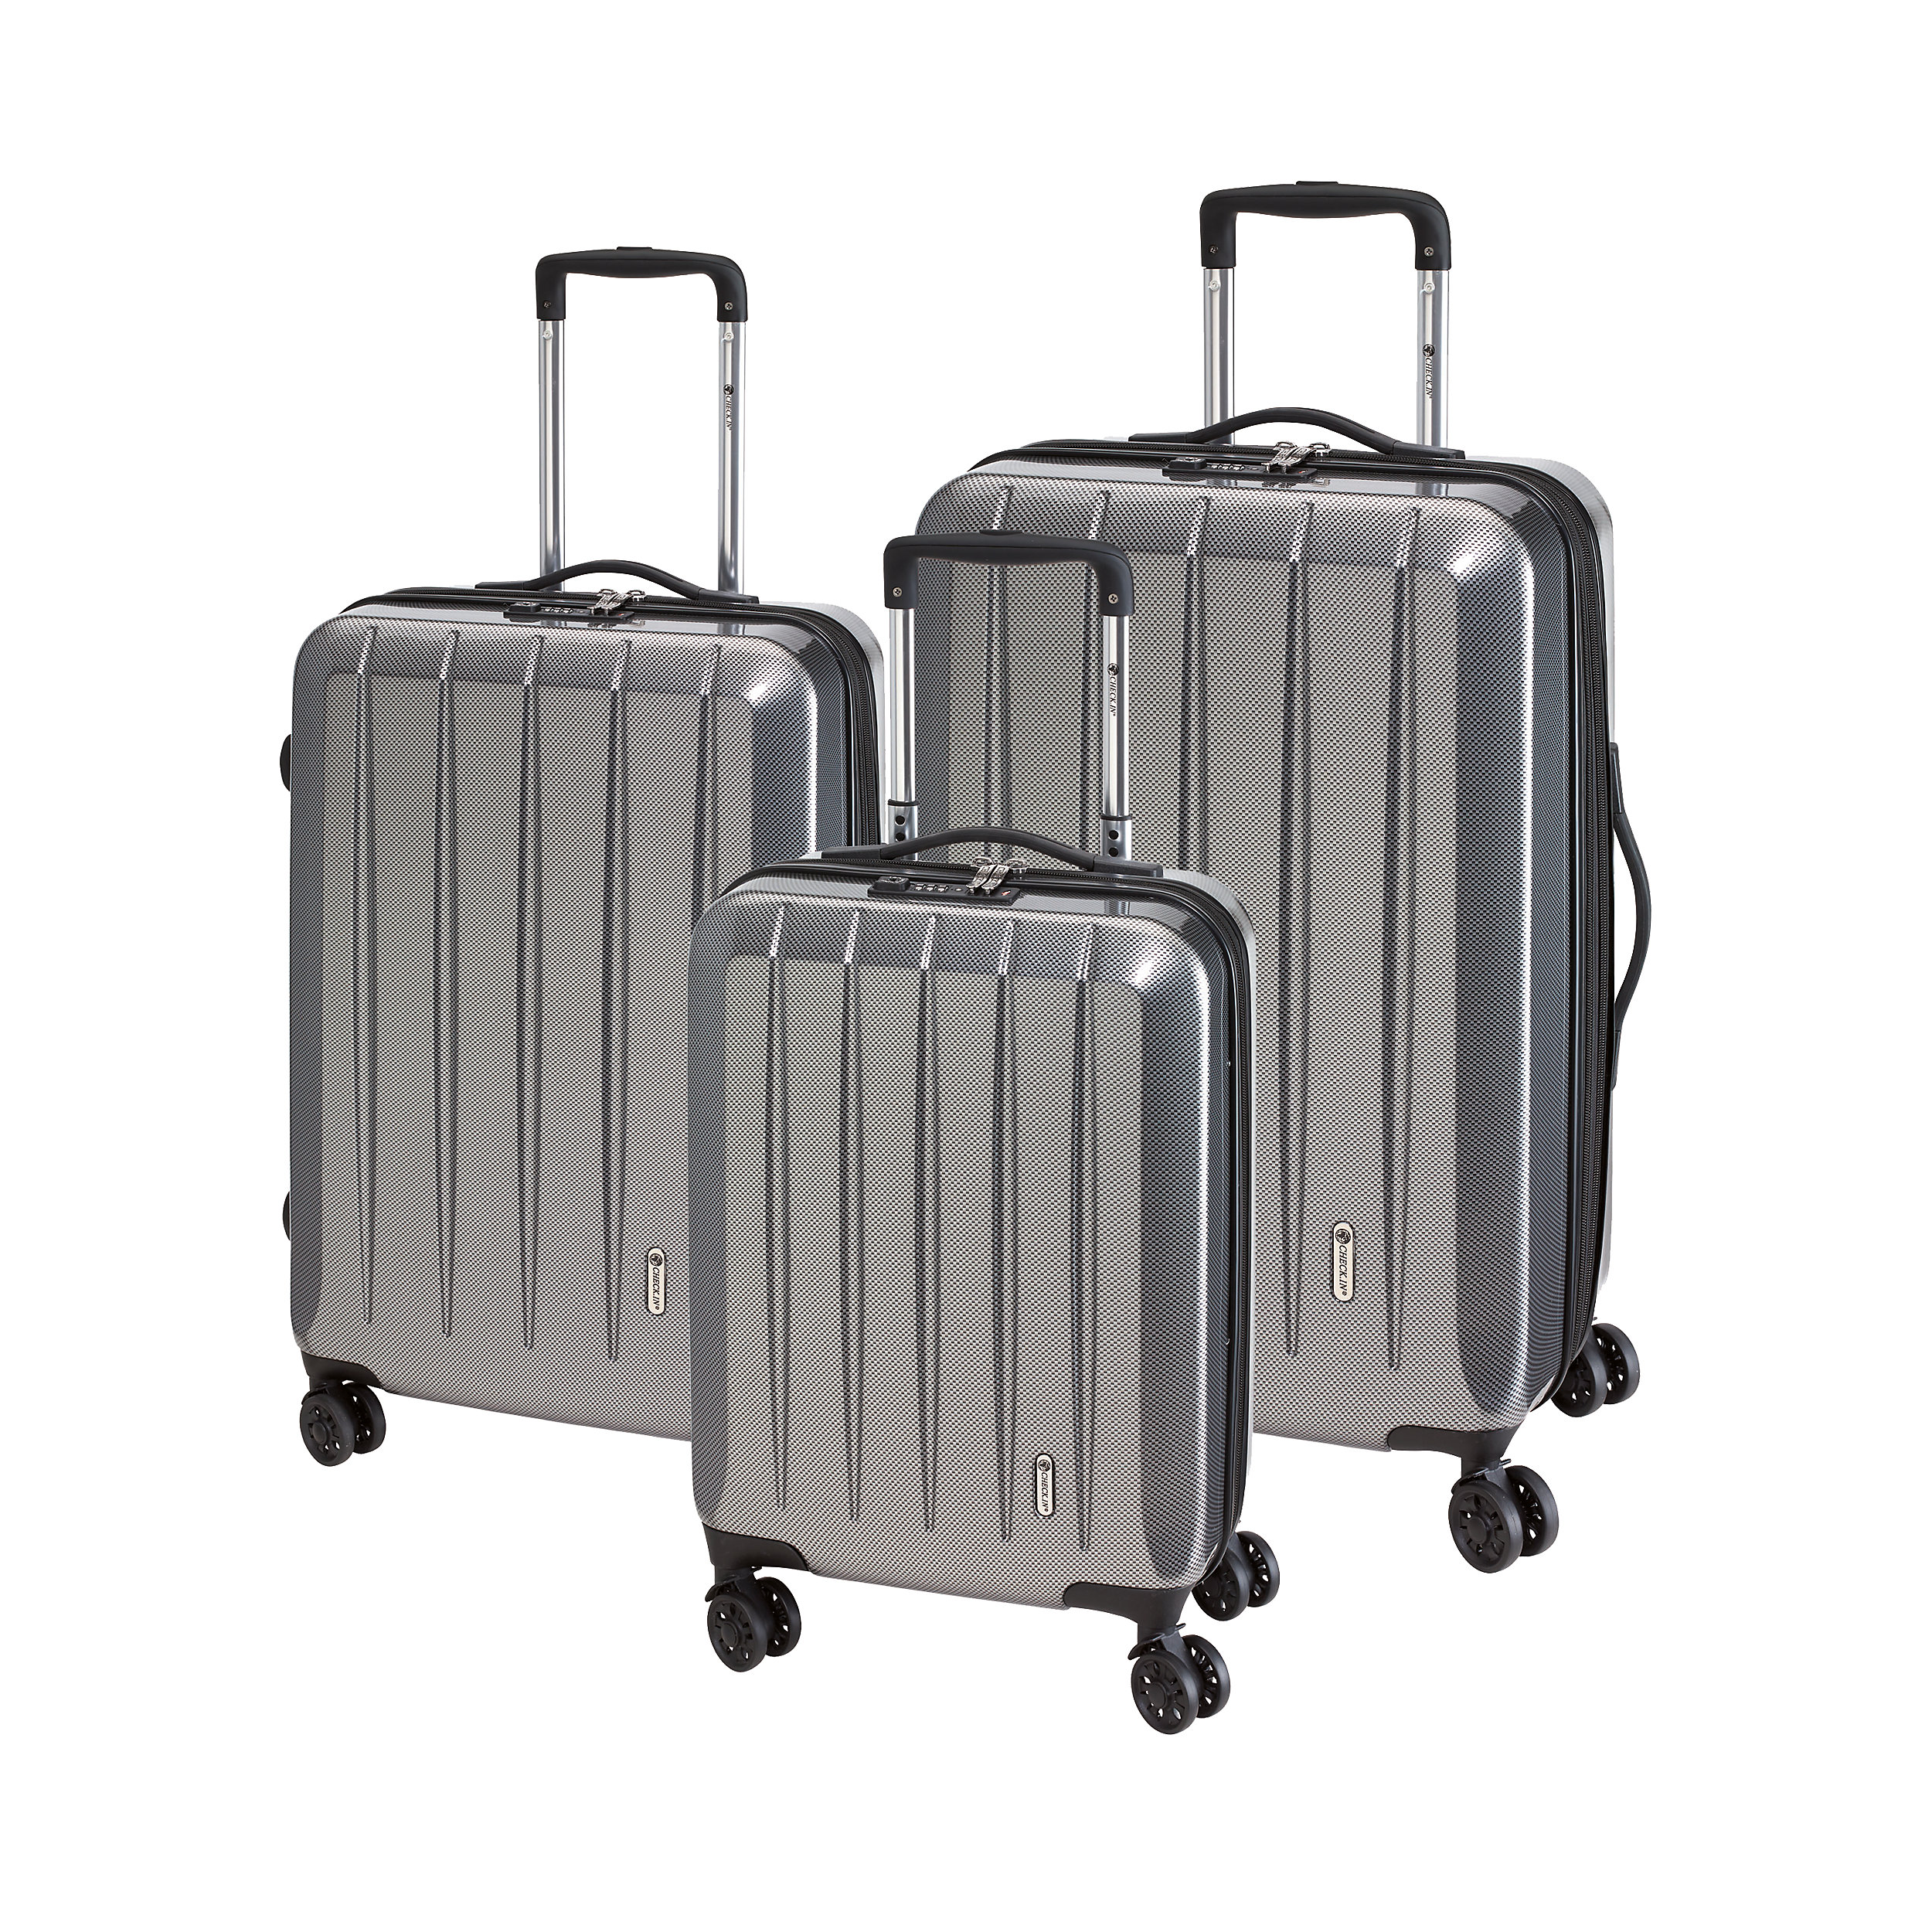 3-part Trolley Set with 4 wheels 55/67/75cm London 2.0 XXL 211 Liter